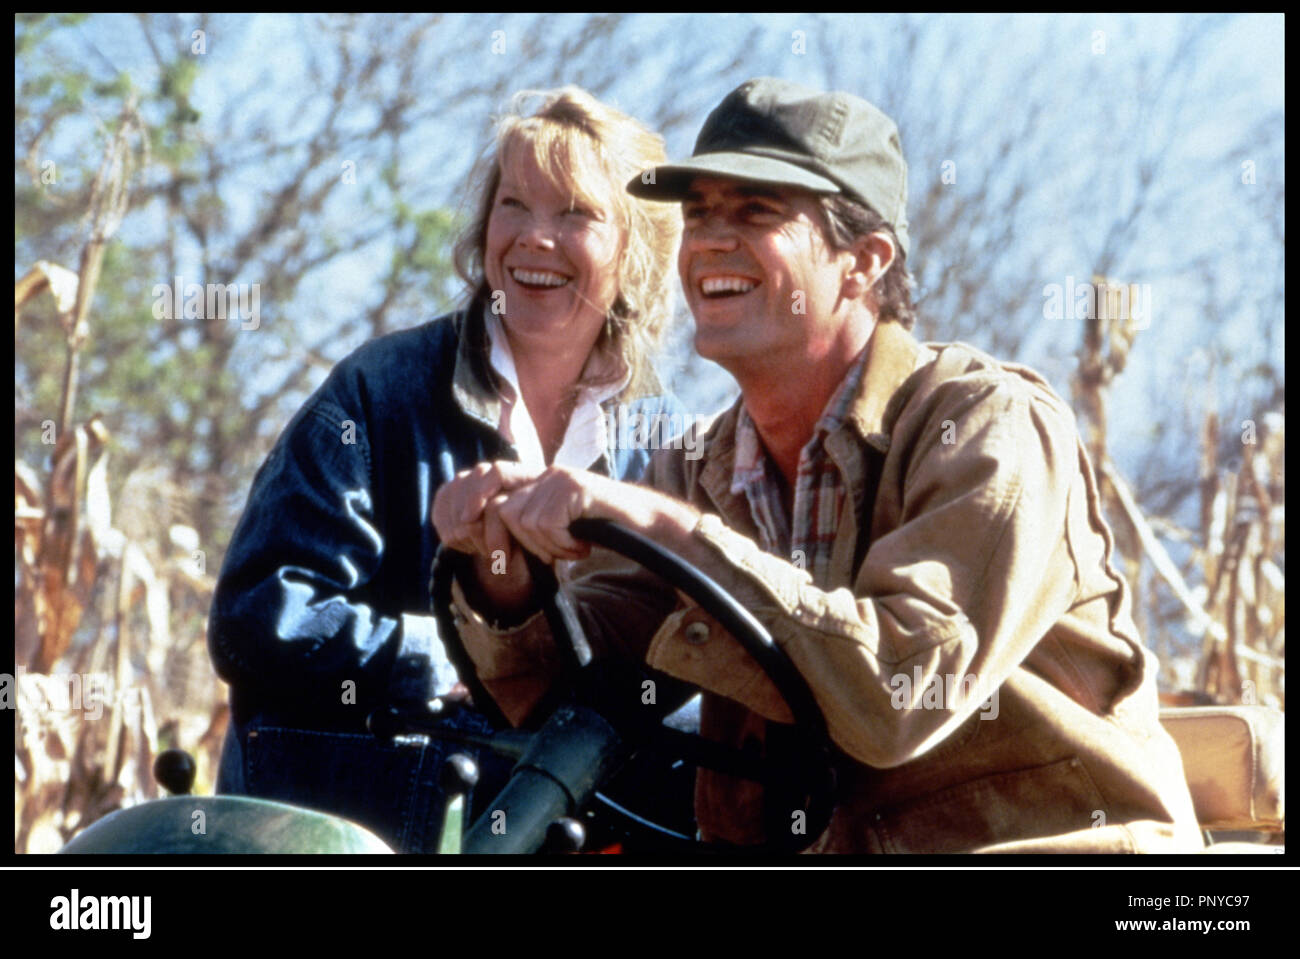 The River 1984 Sissy Spacek Stock Photos Winter Hat Wh 97 Images Alamy